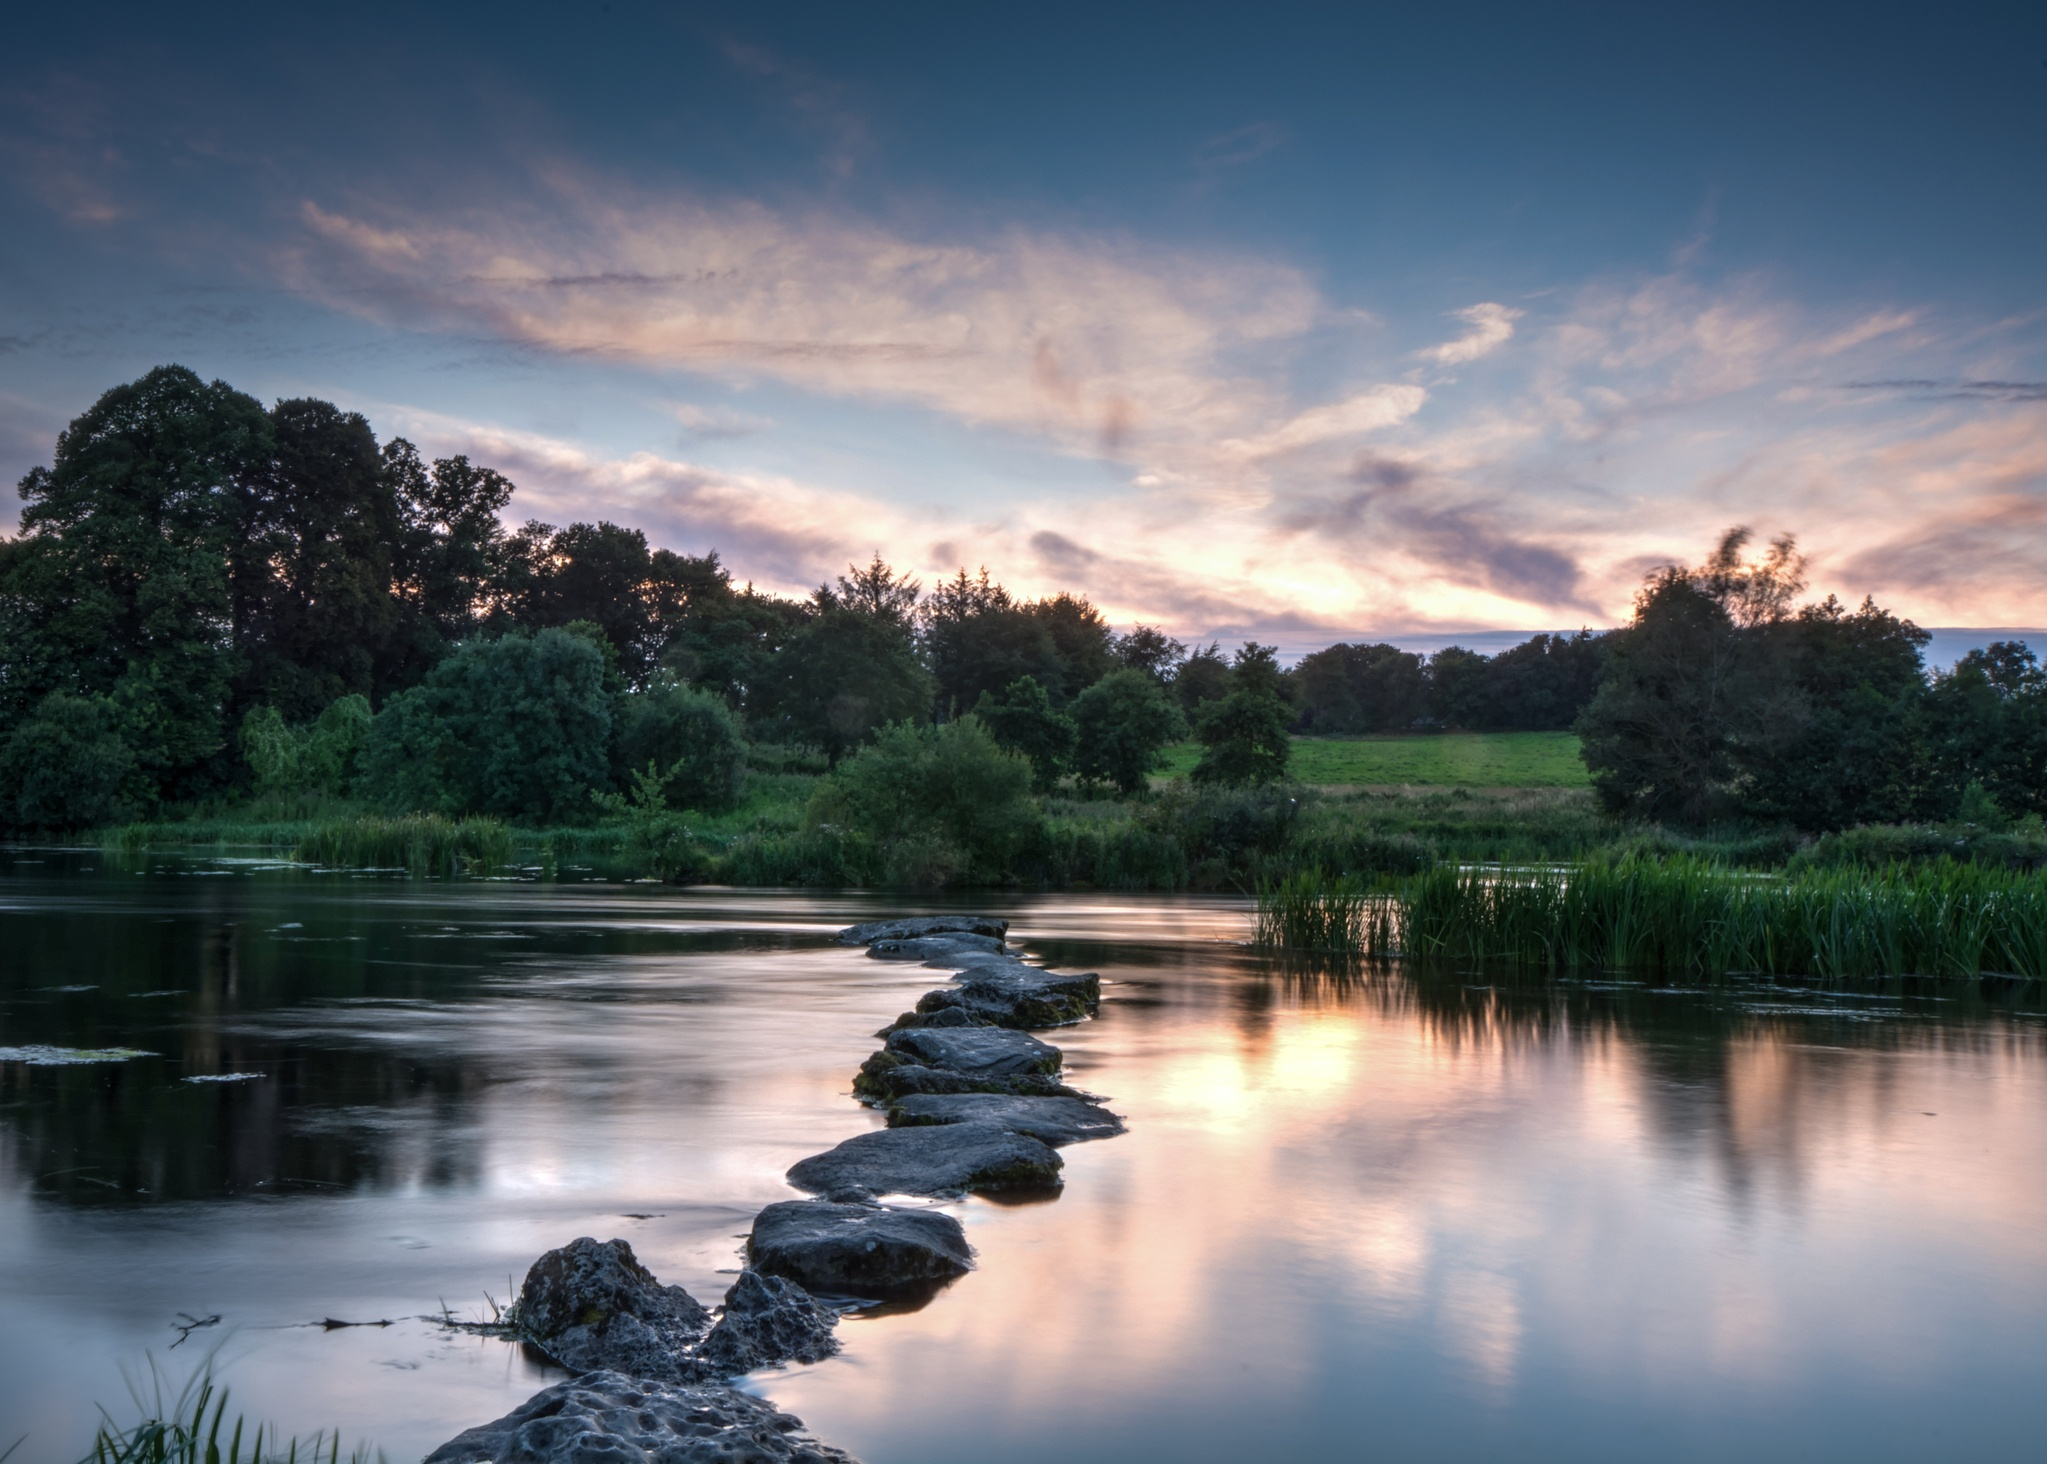 Stepping stones to IVR optimization